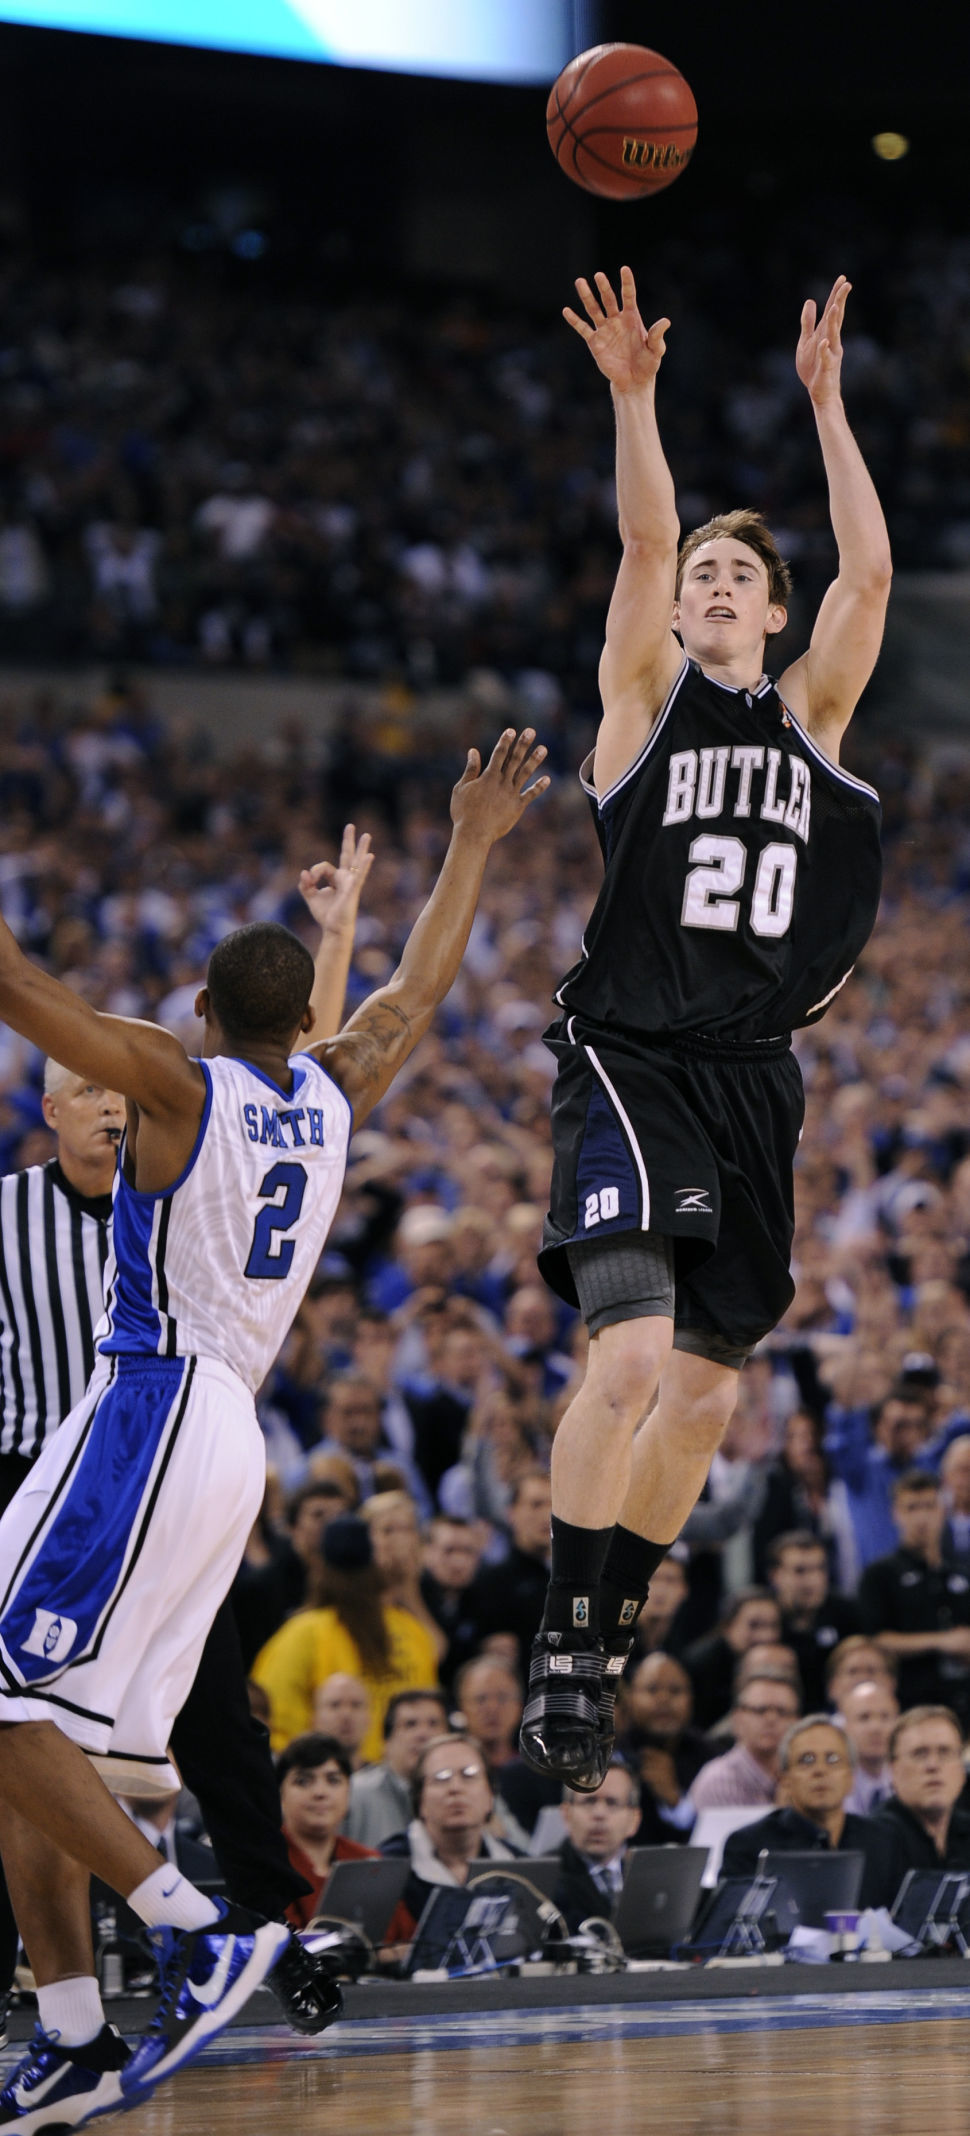 AP Was There Duke Butler 2010 Basketball